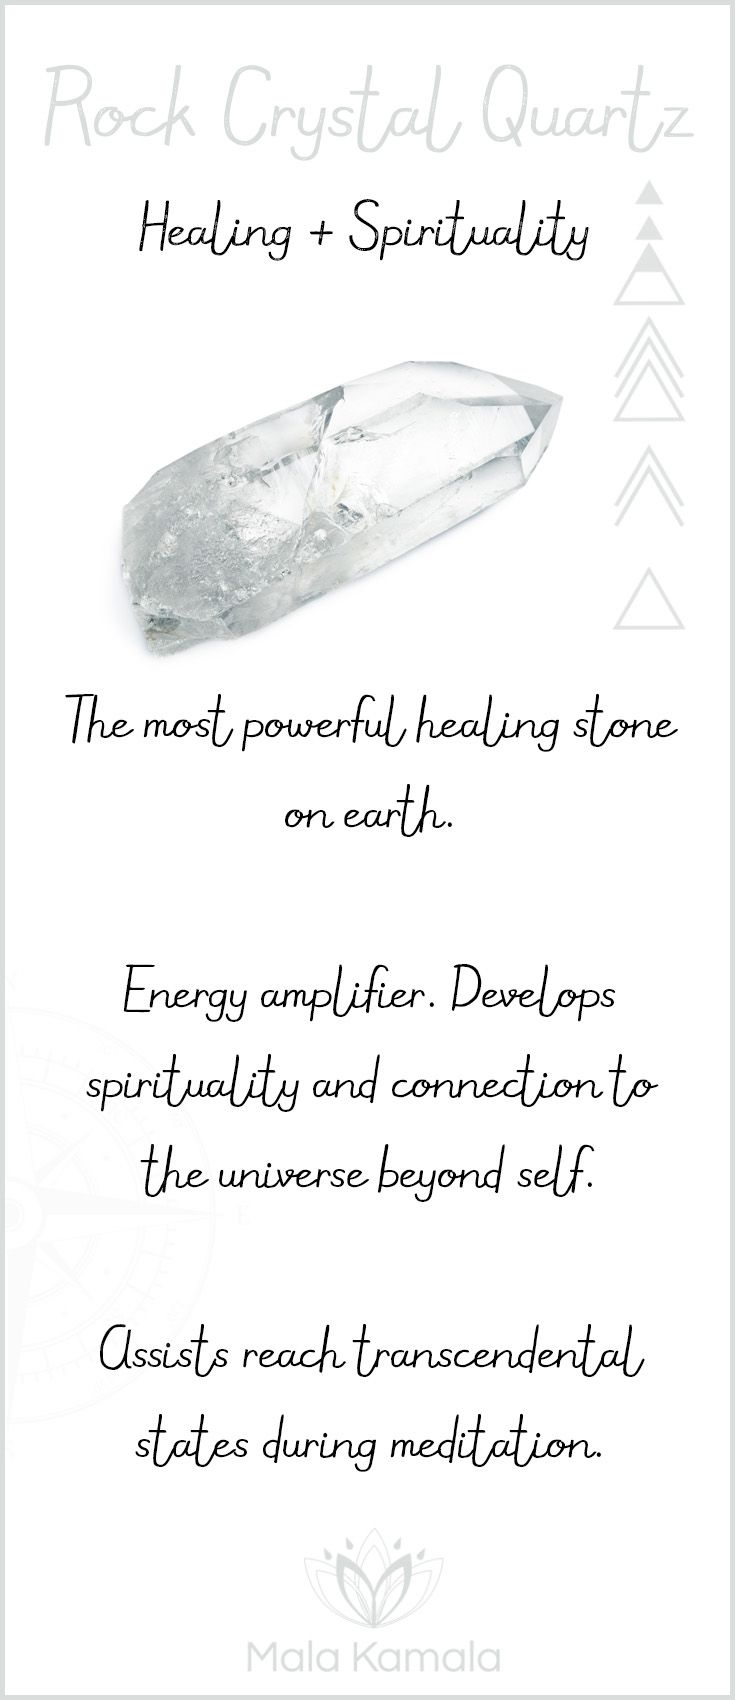 Pin To Save, Tap To Shop The Gem. What is the meaning and crystal and chakra healing properties of rock crystal clear quartz? A stone for healing and spirituality.